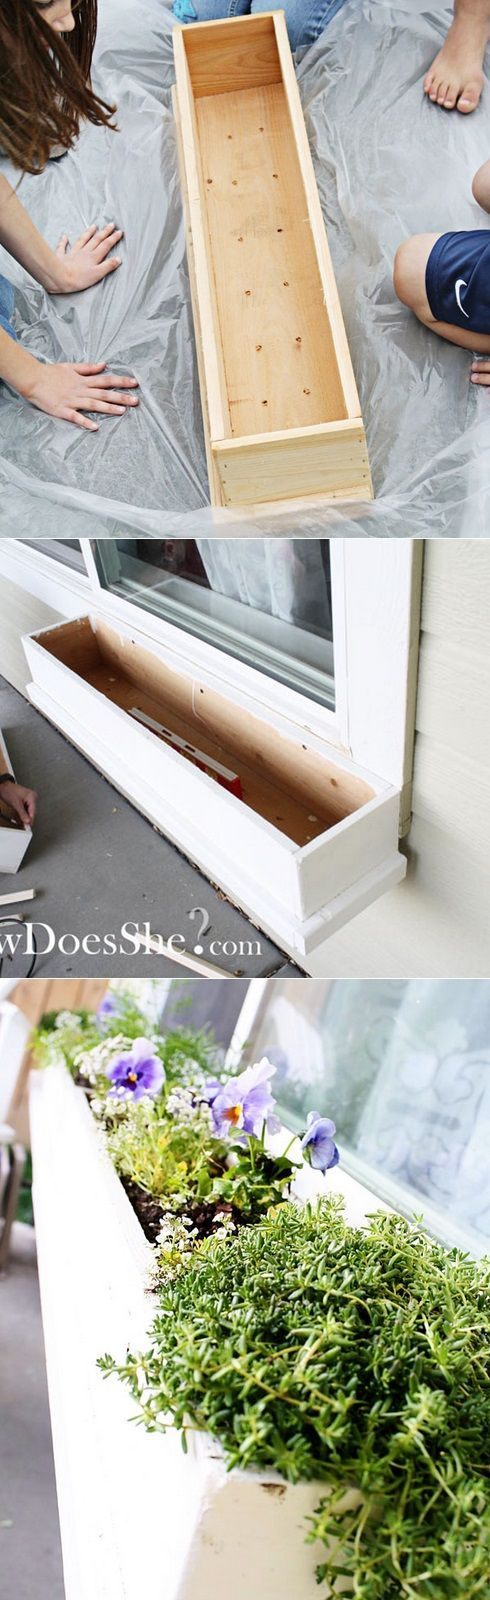 101 Gardening: How to make a gorgeous window box